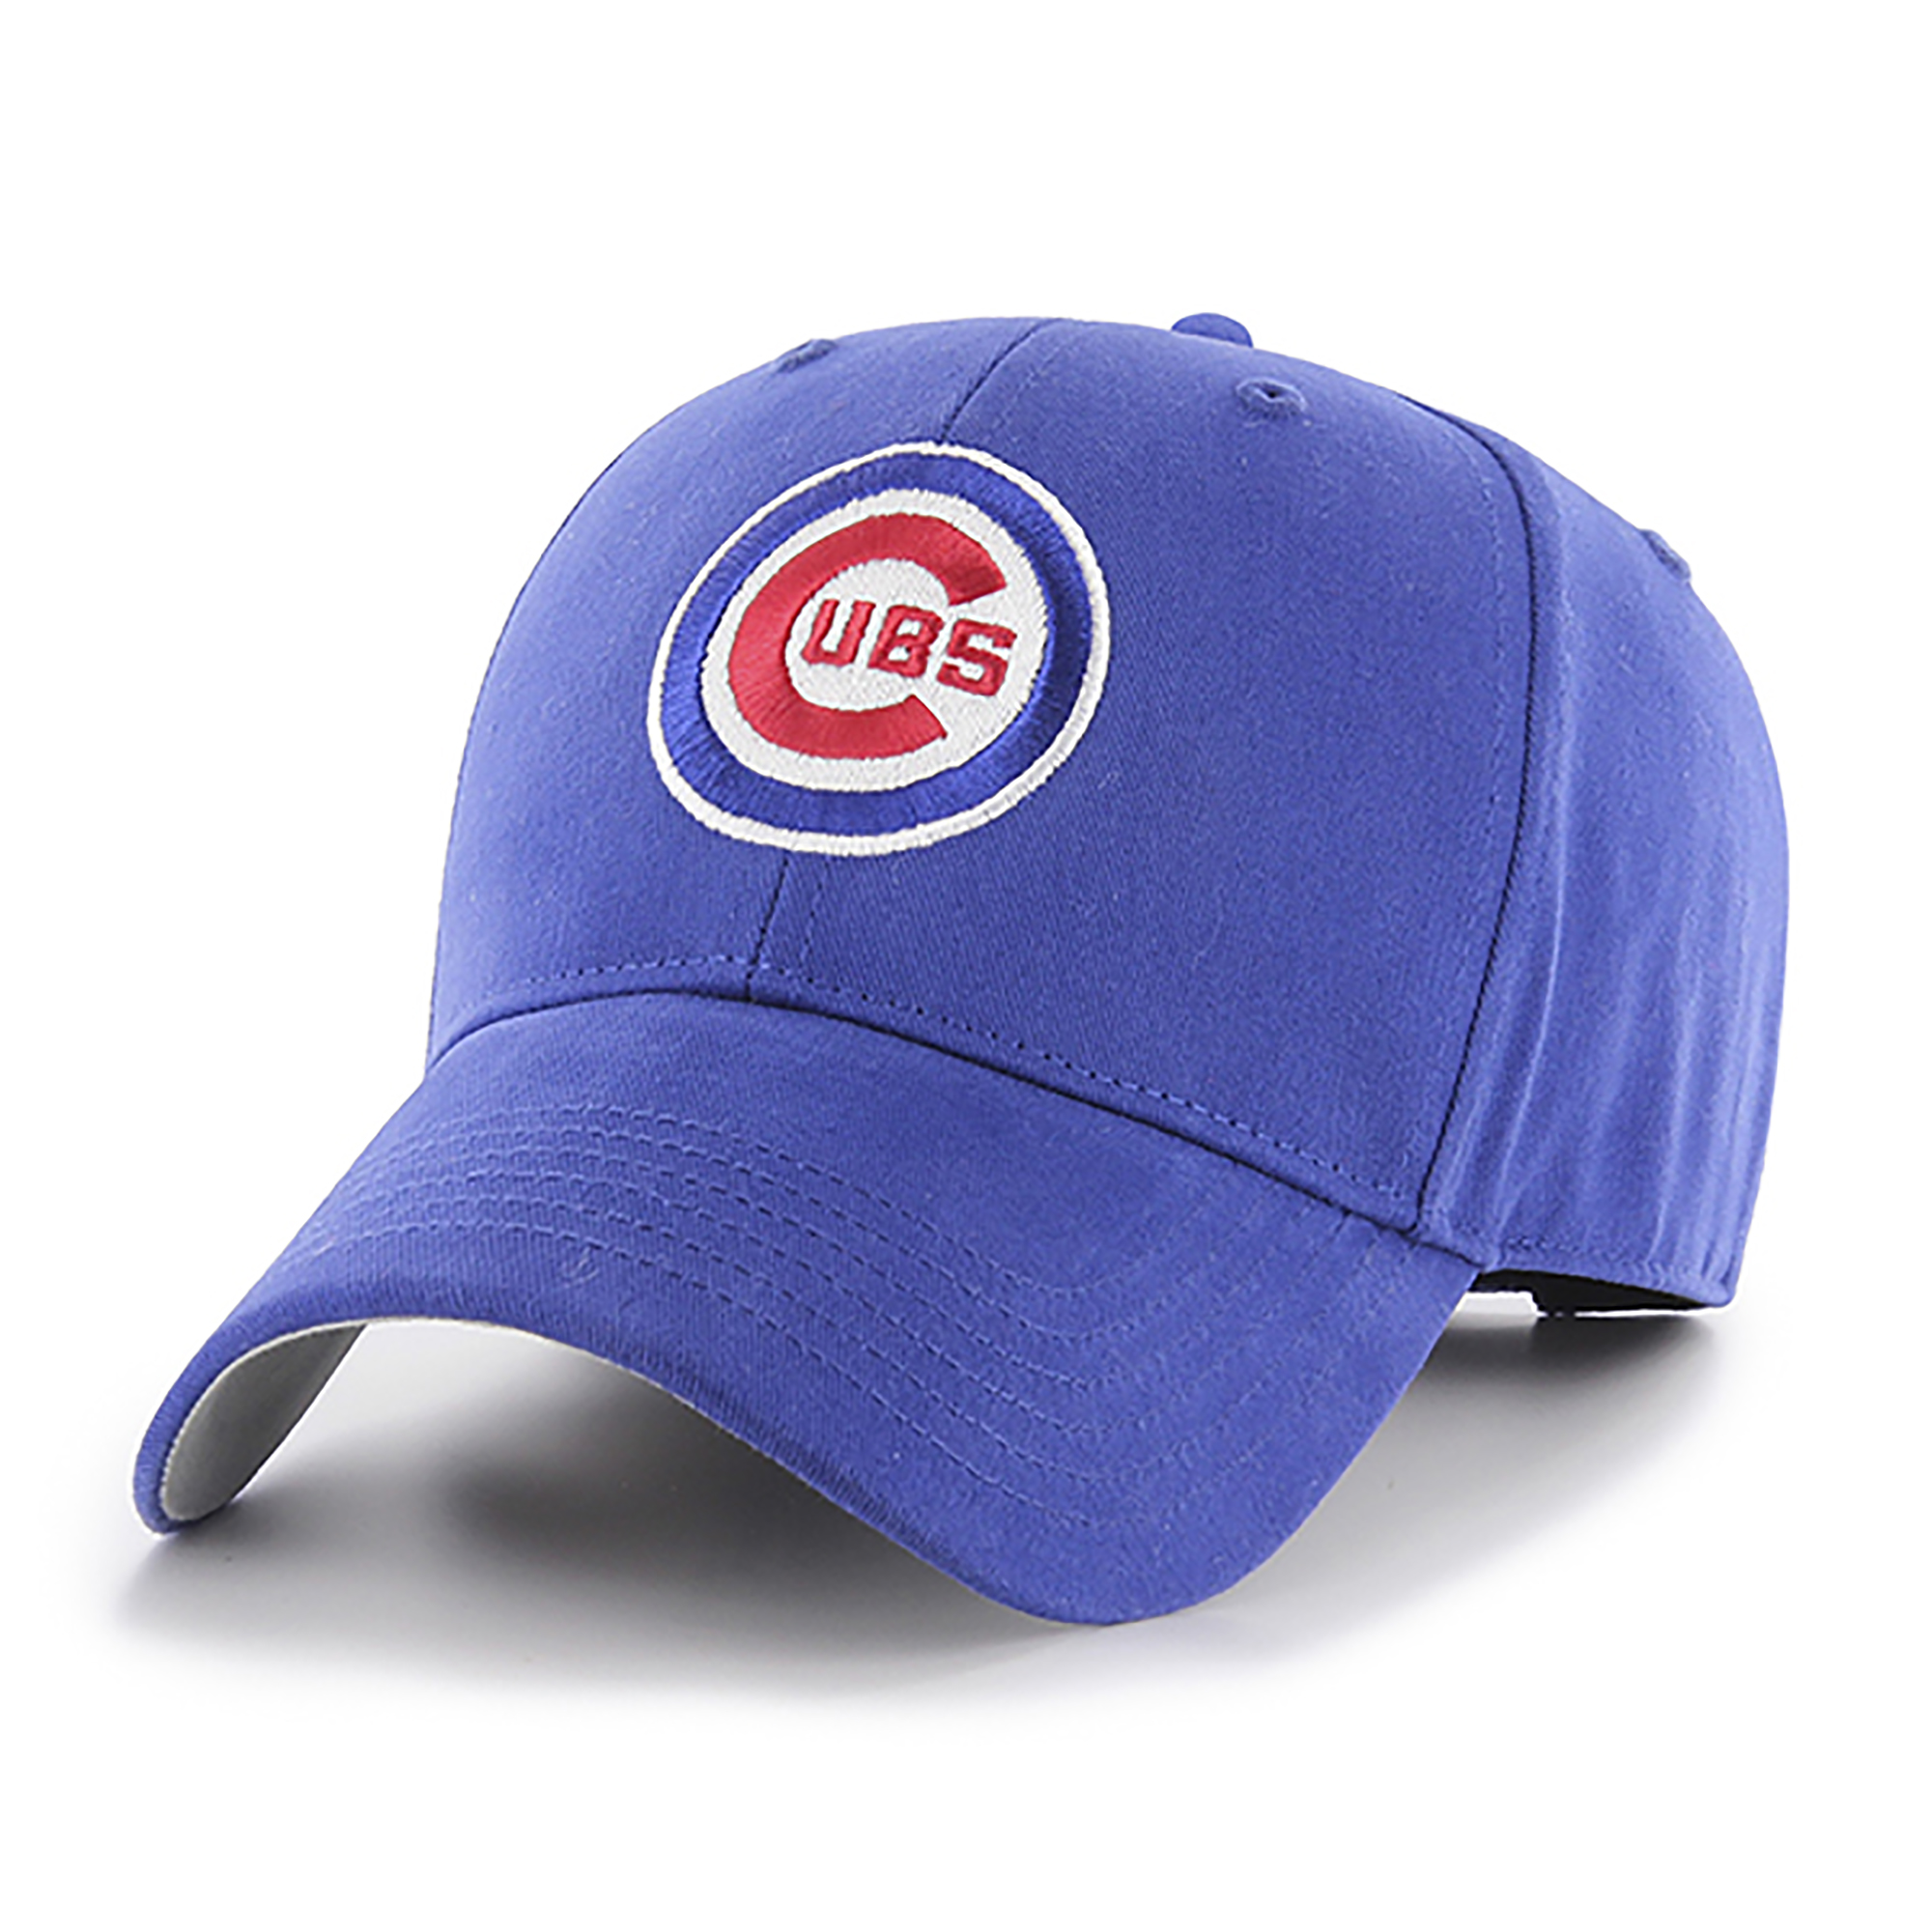 MLB Chicago Cubs Basic Youth Adjustable Cap/Hat by Fan Favorite